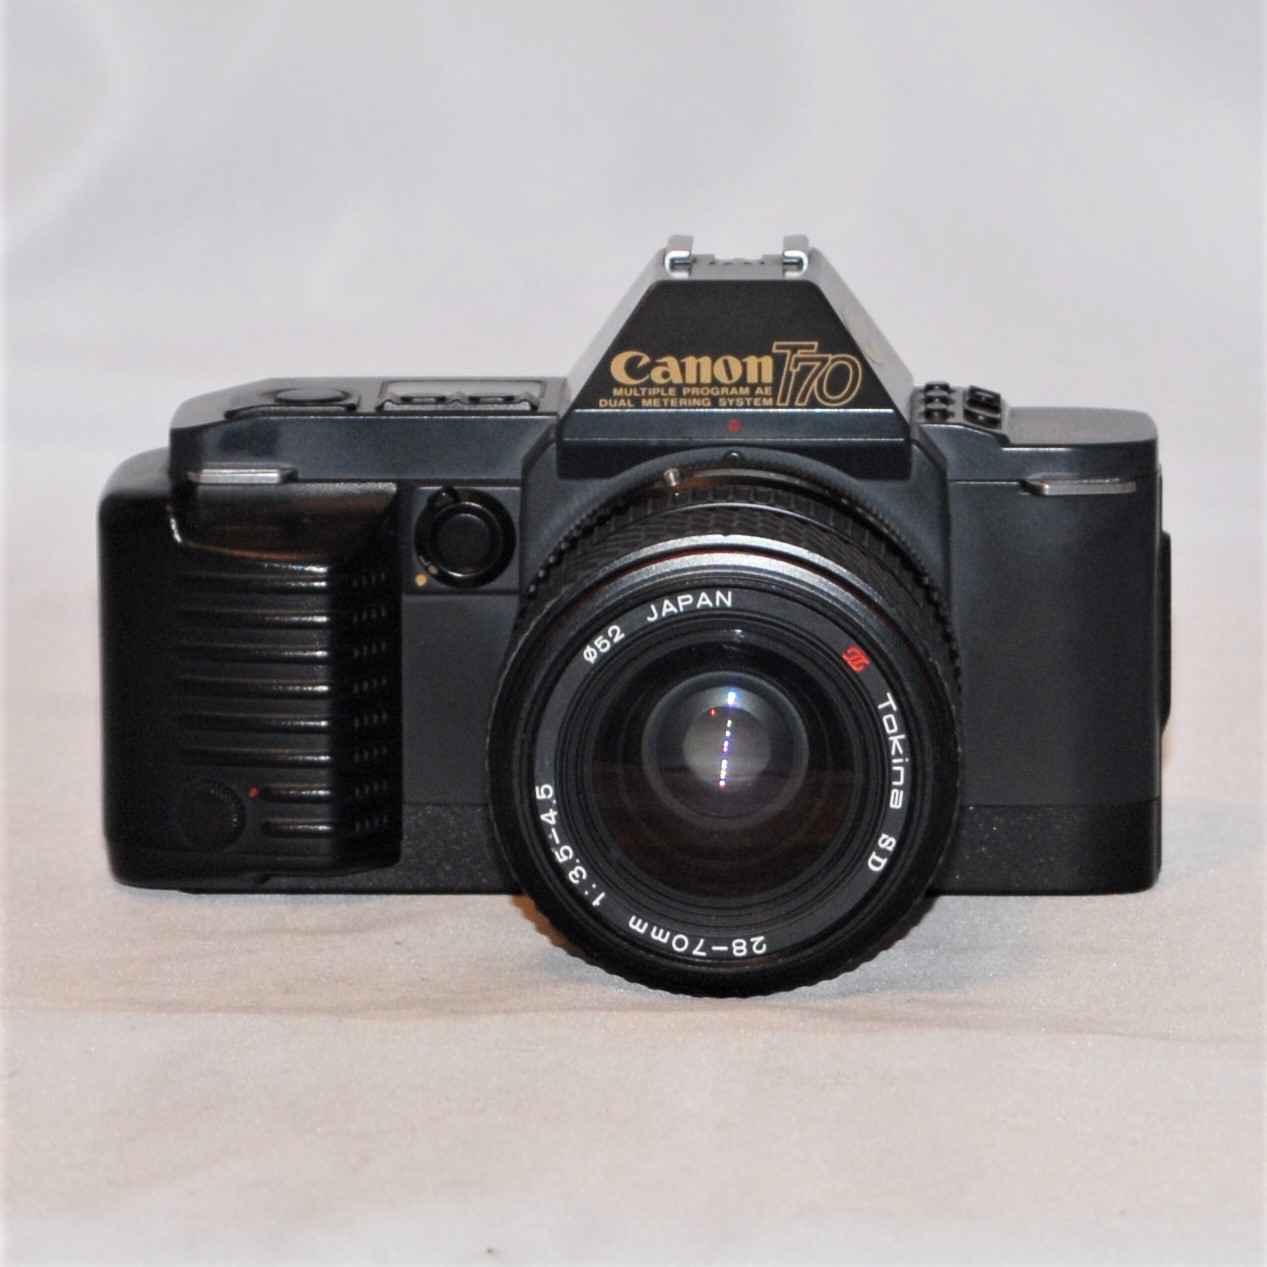 Canon T70 + Tokina SD 28-70mm f3.5-f4.5. Excellent condition.